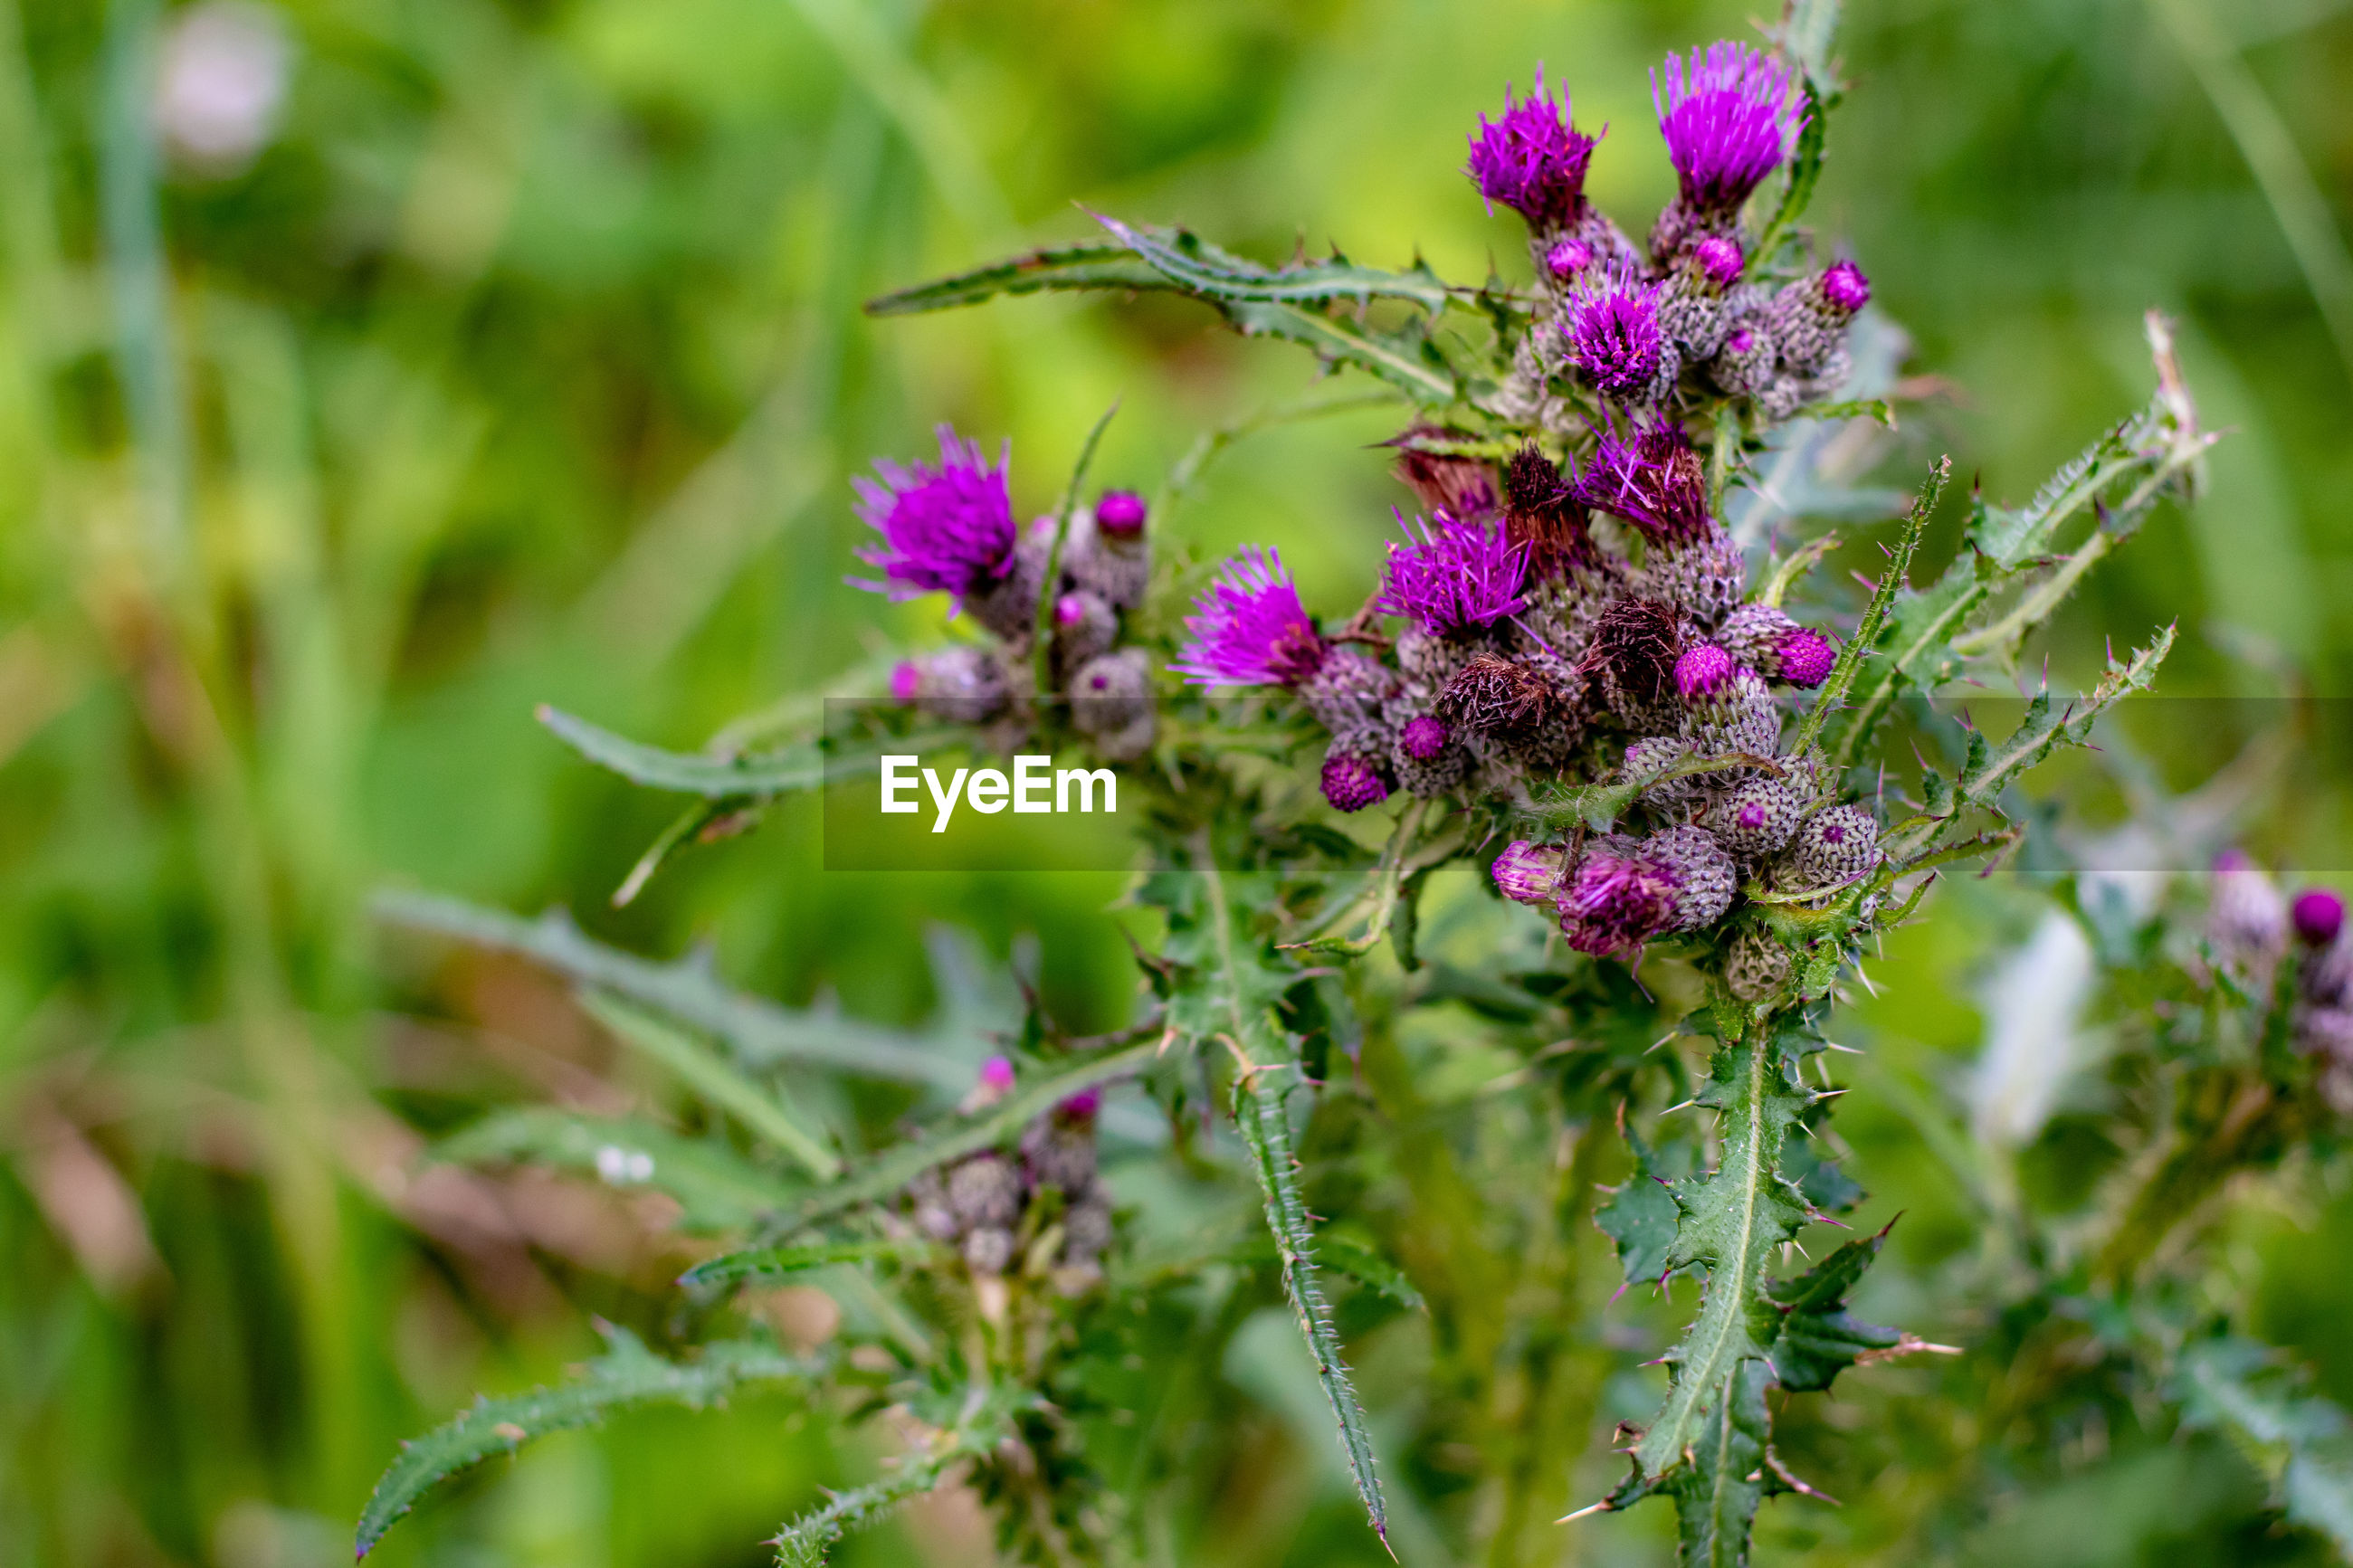 CLOSE-UP OF PURPLE FLOWERING PLANT OUTDOORS